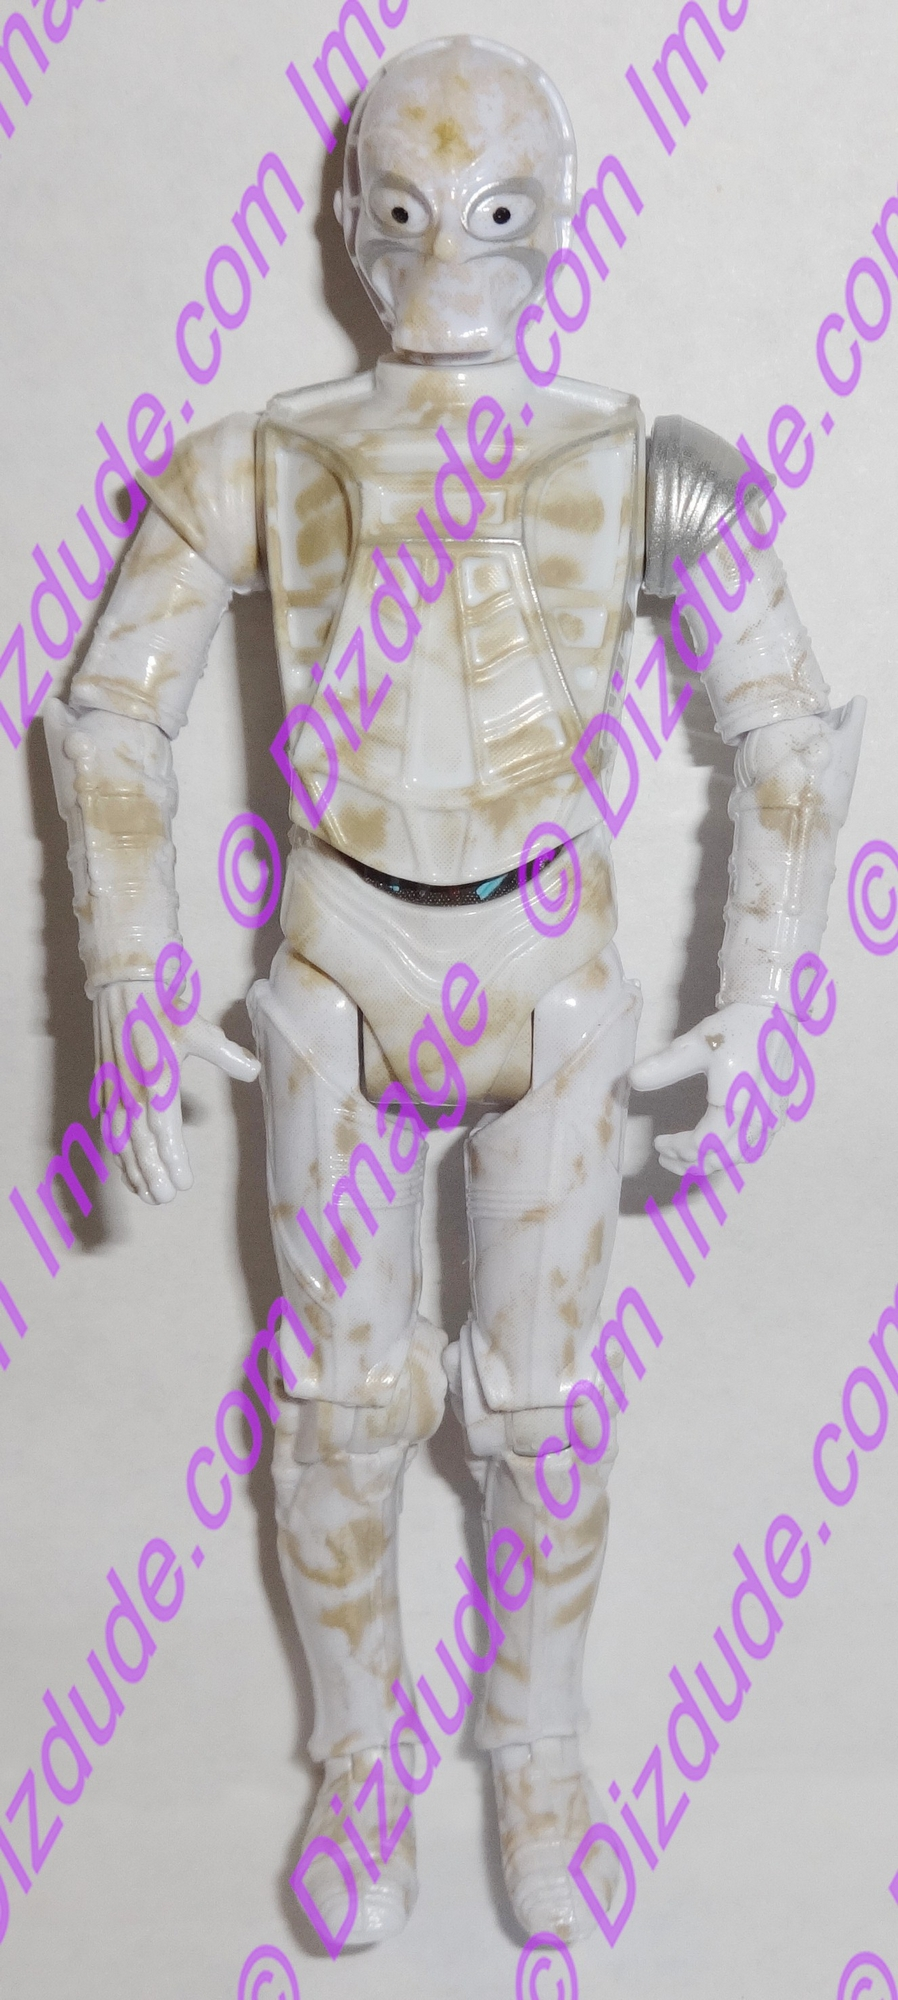 White CZ Protocol Droid from Disney Star Wars Build-A-Droid Factory